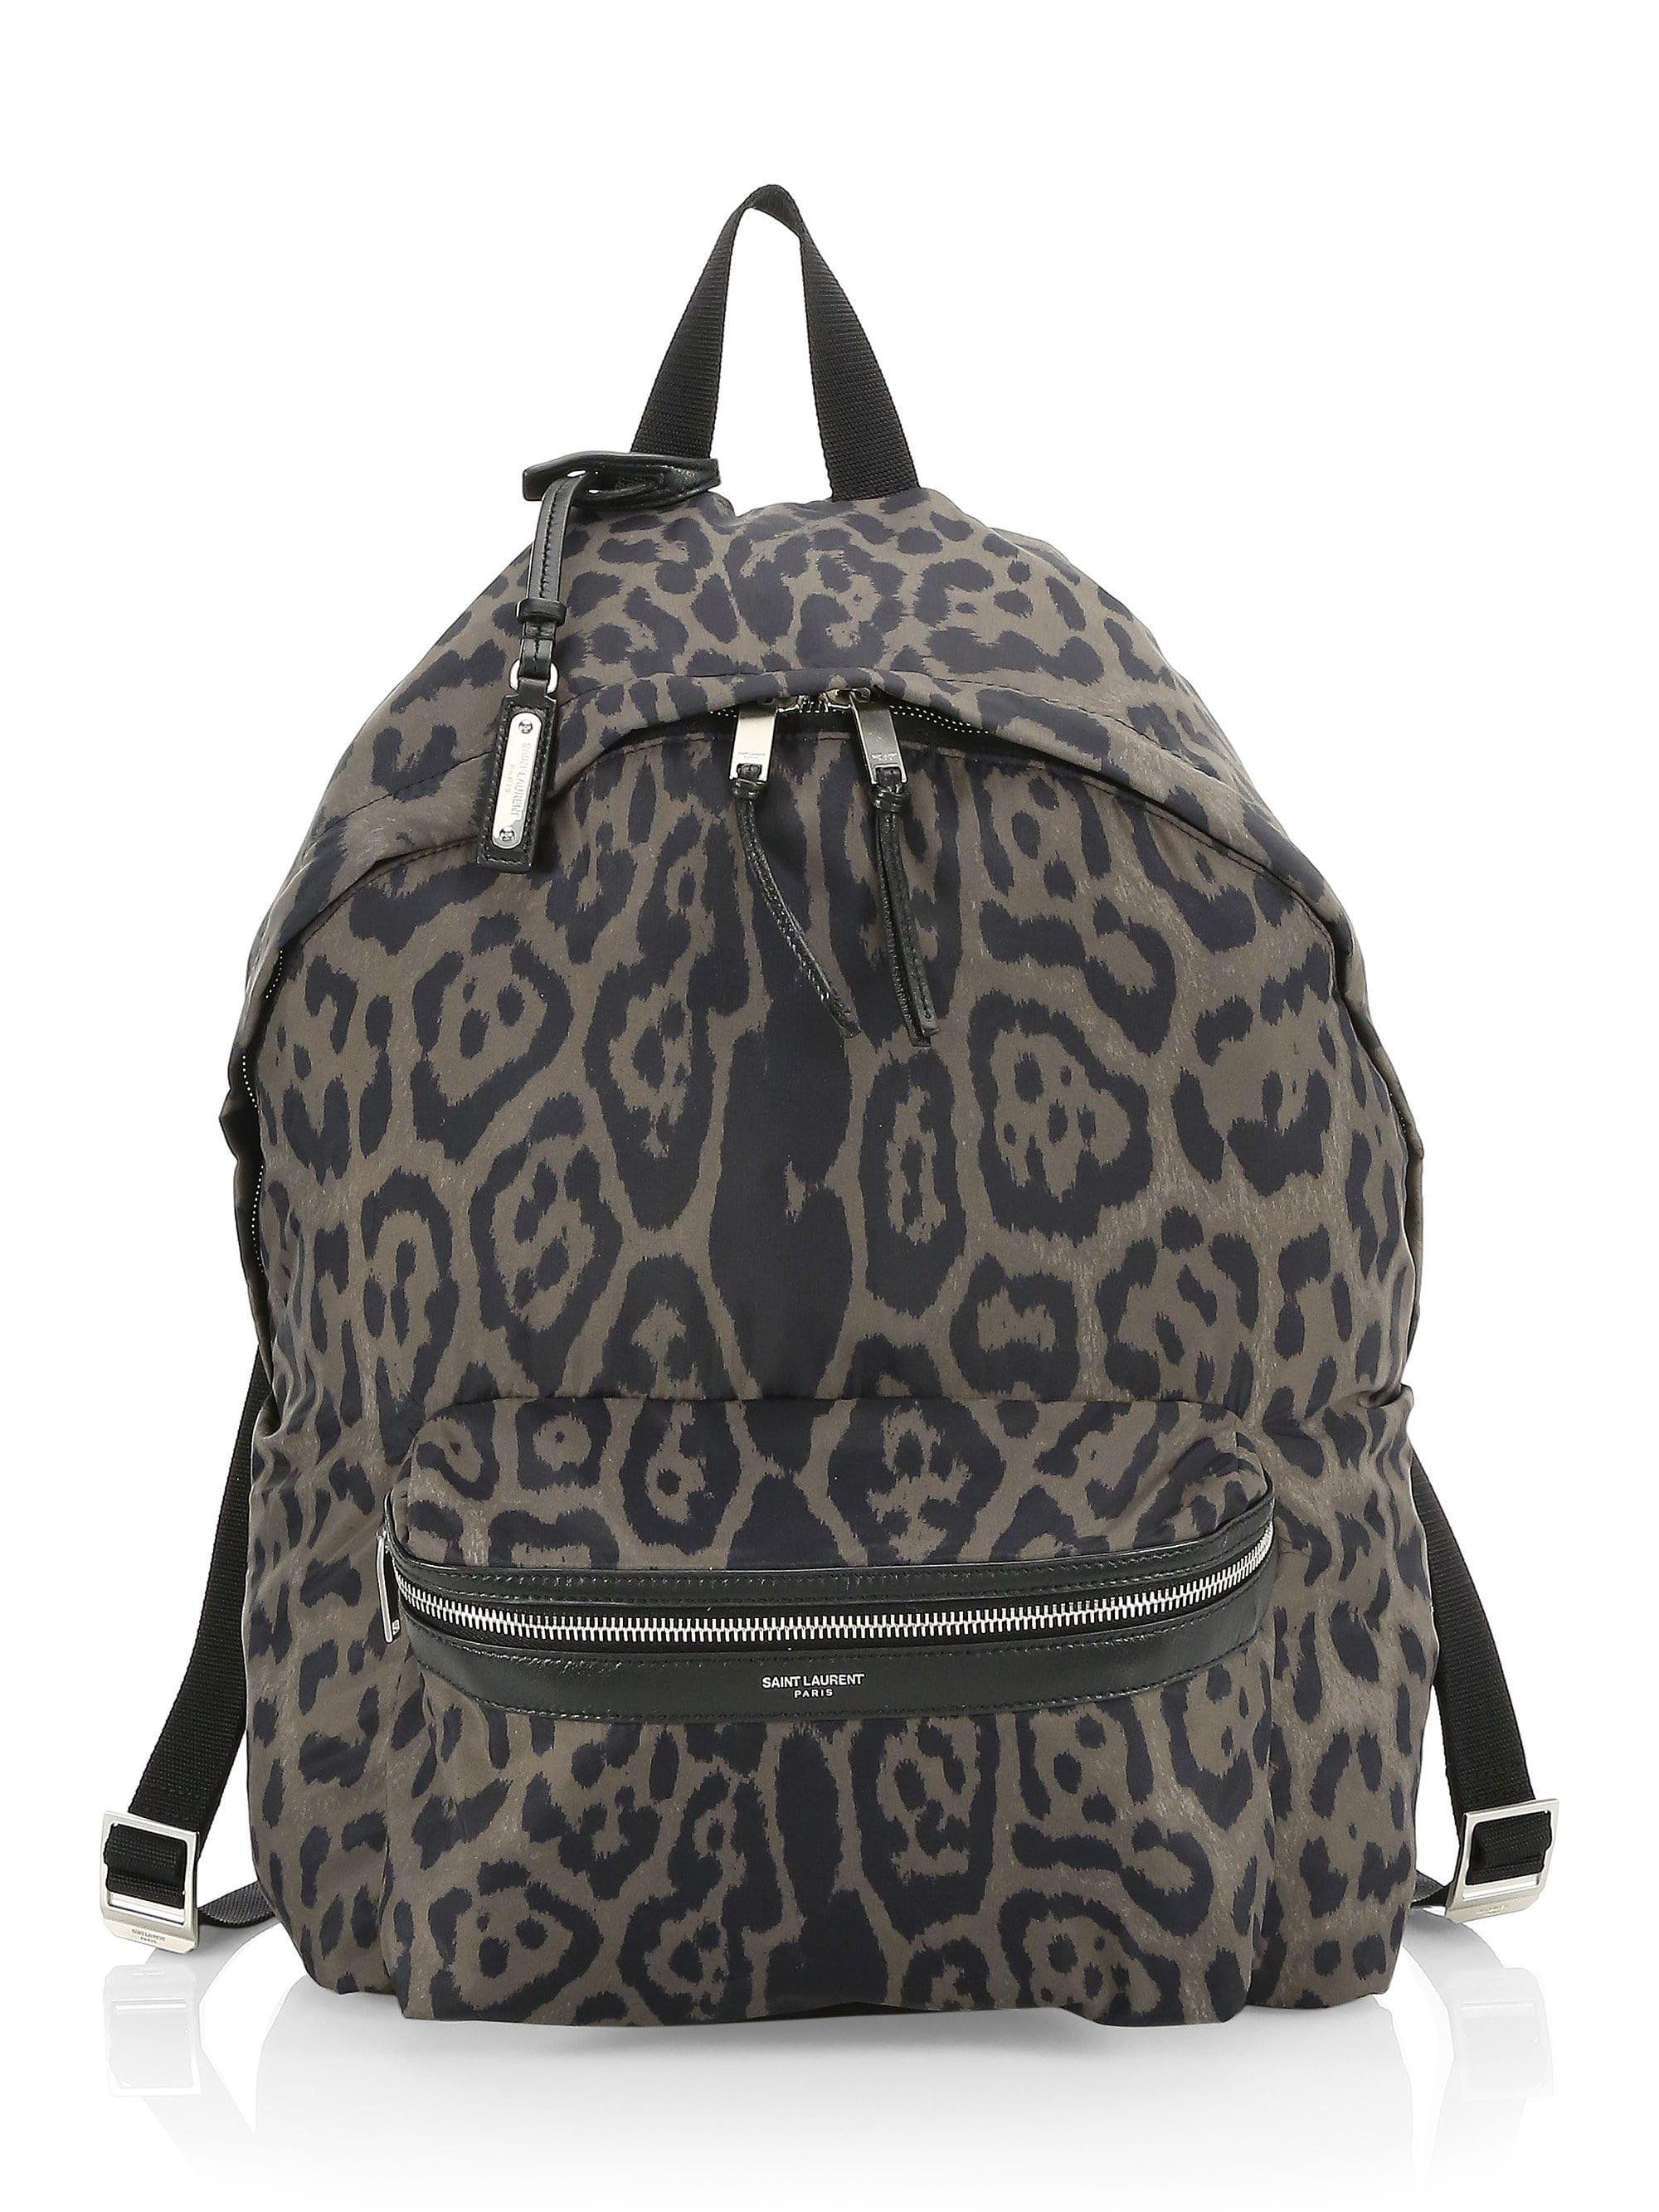 6e5c1b25885a Lyst - Saint Laurent Foldable City Printed Backpack for Men